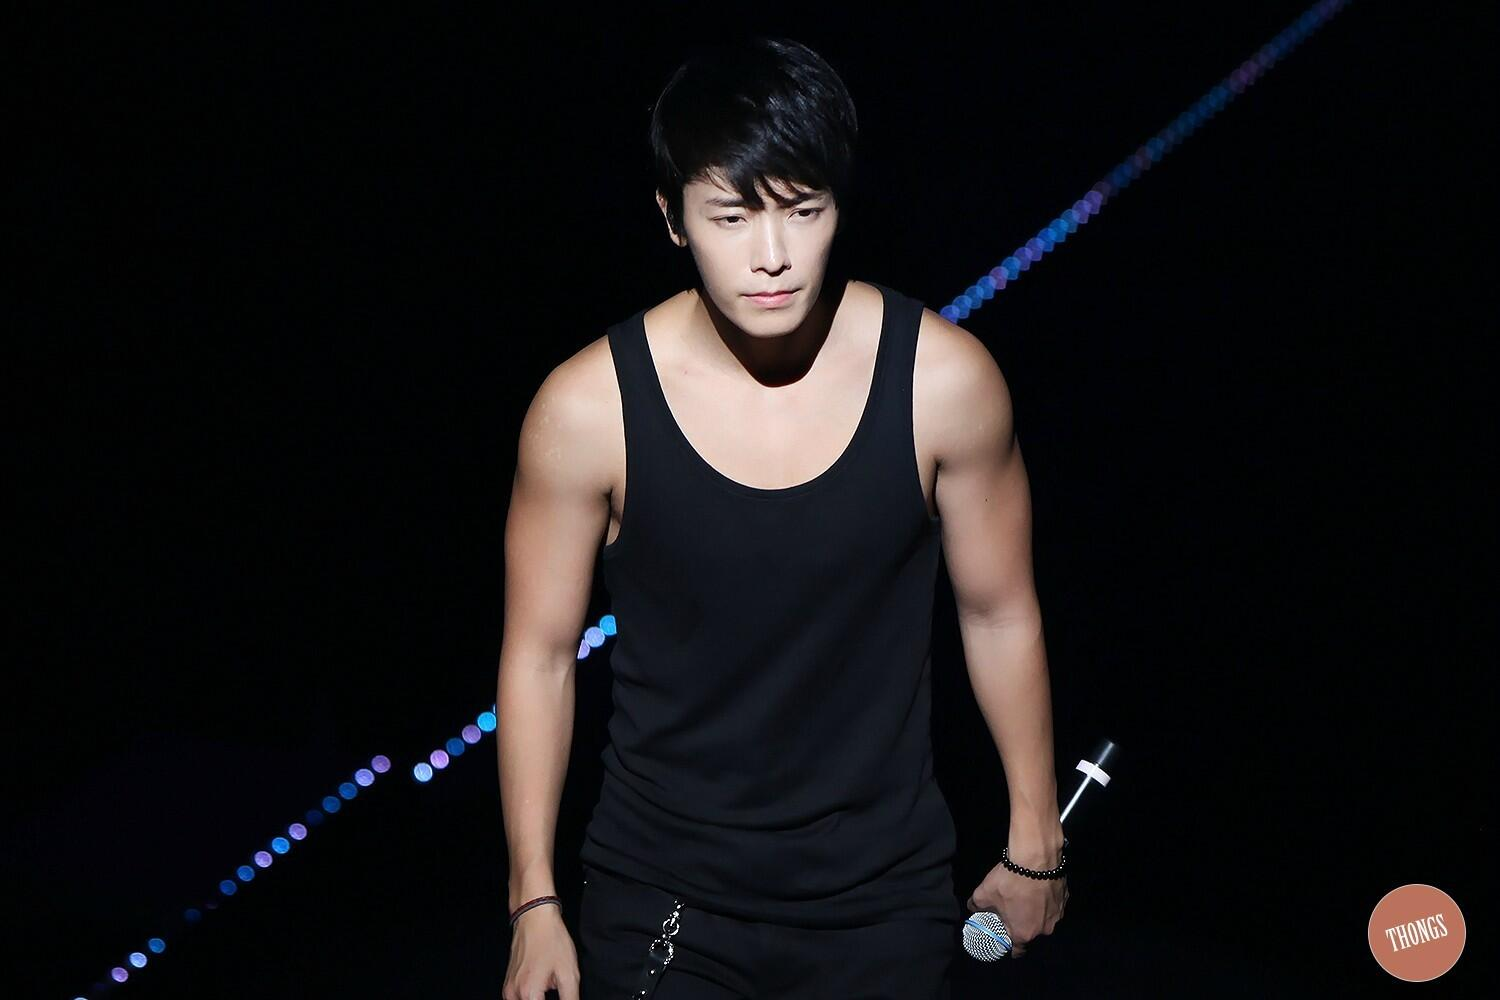 [130810/HQ] #SS5TaiwanDay1 Donghae >o<!! [Thongz] http://t.co/EnoIVccGUw